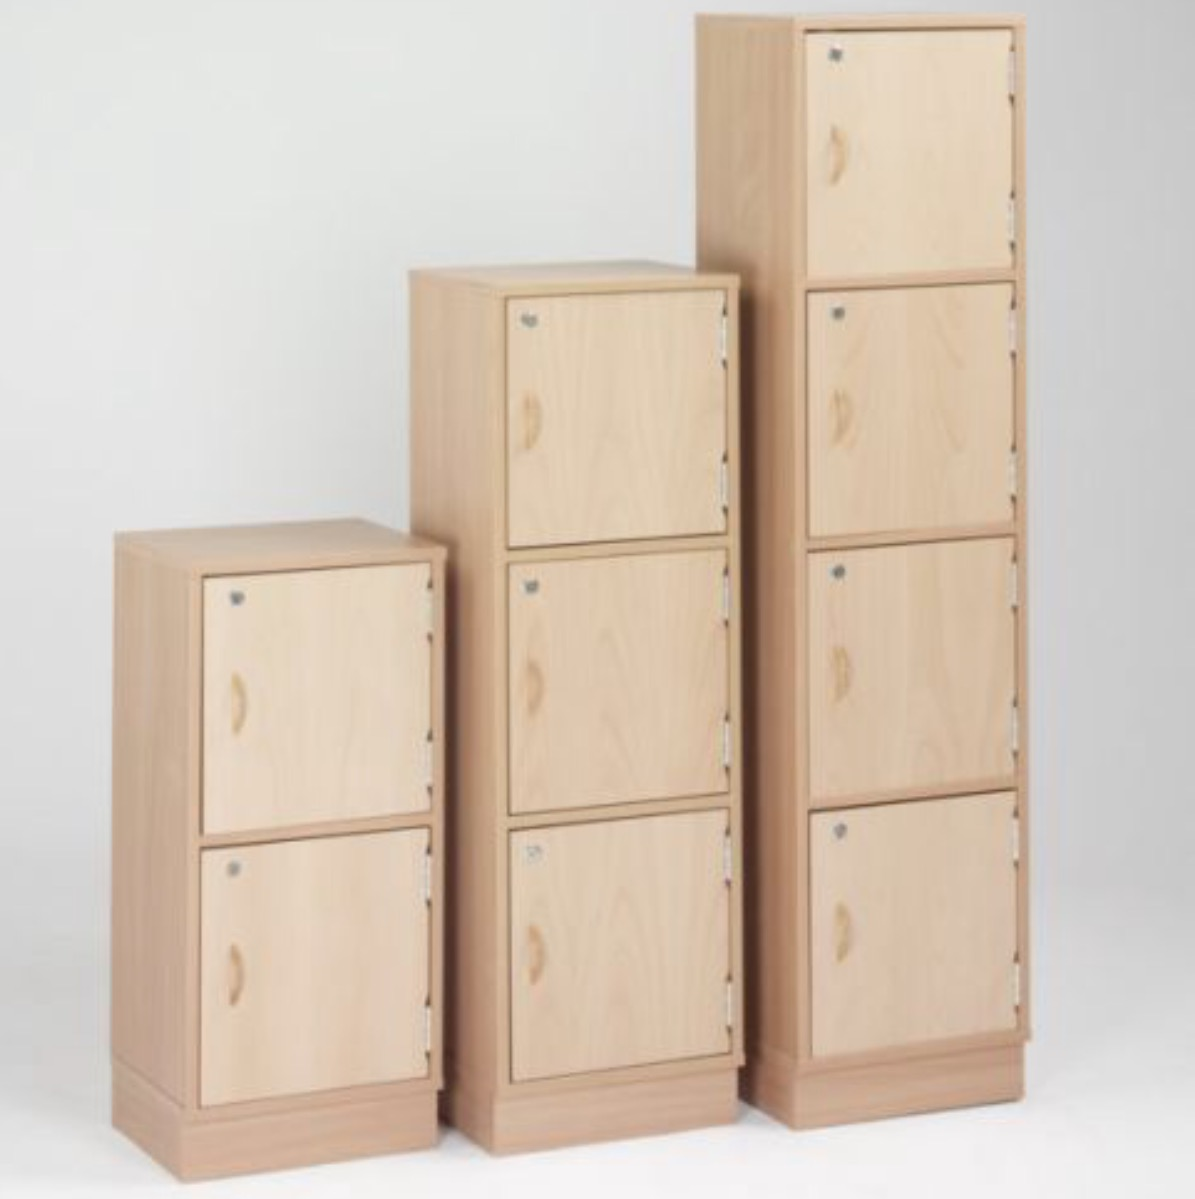 Wooden locker 9 door beech 1295h x 1165w x 300d coloured for Wood lockers with doors